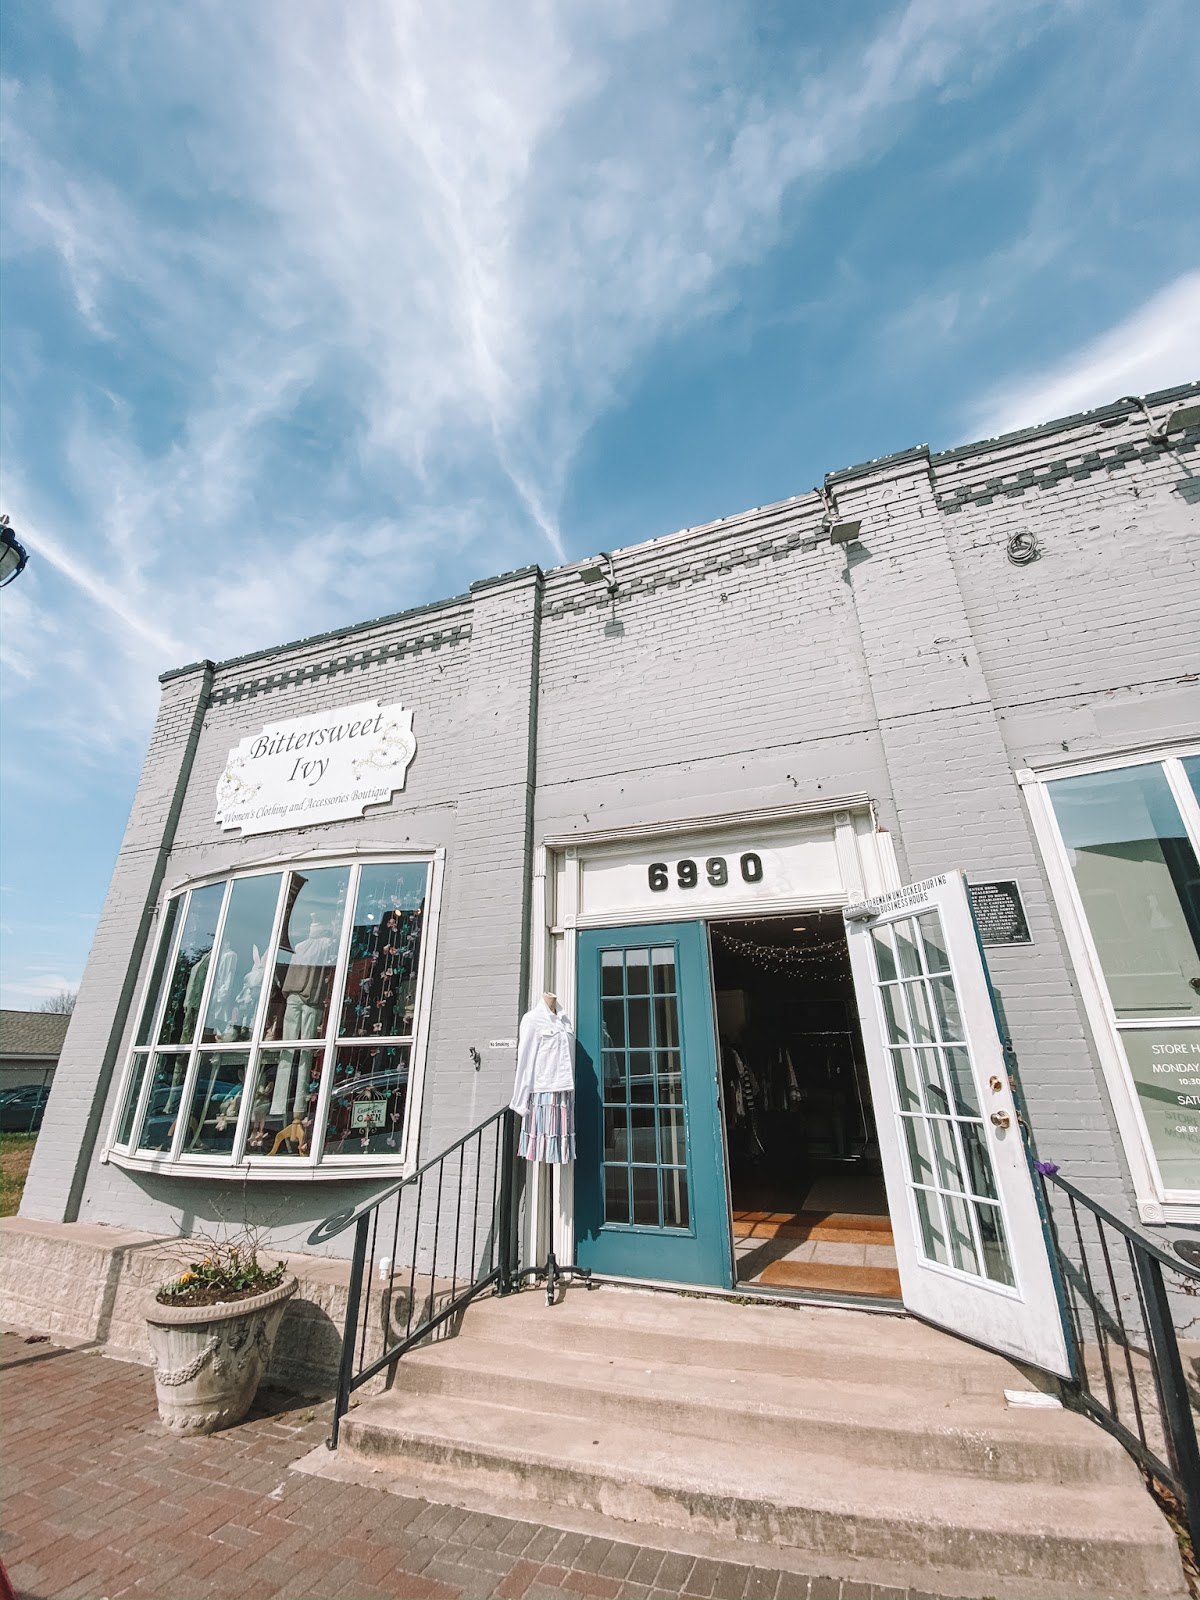 Bittersweet Ivy boutique is located on Main Street in Frisco, Texas